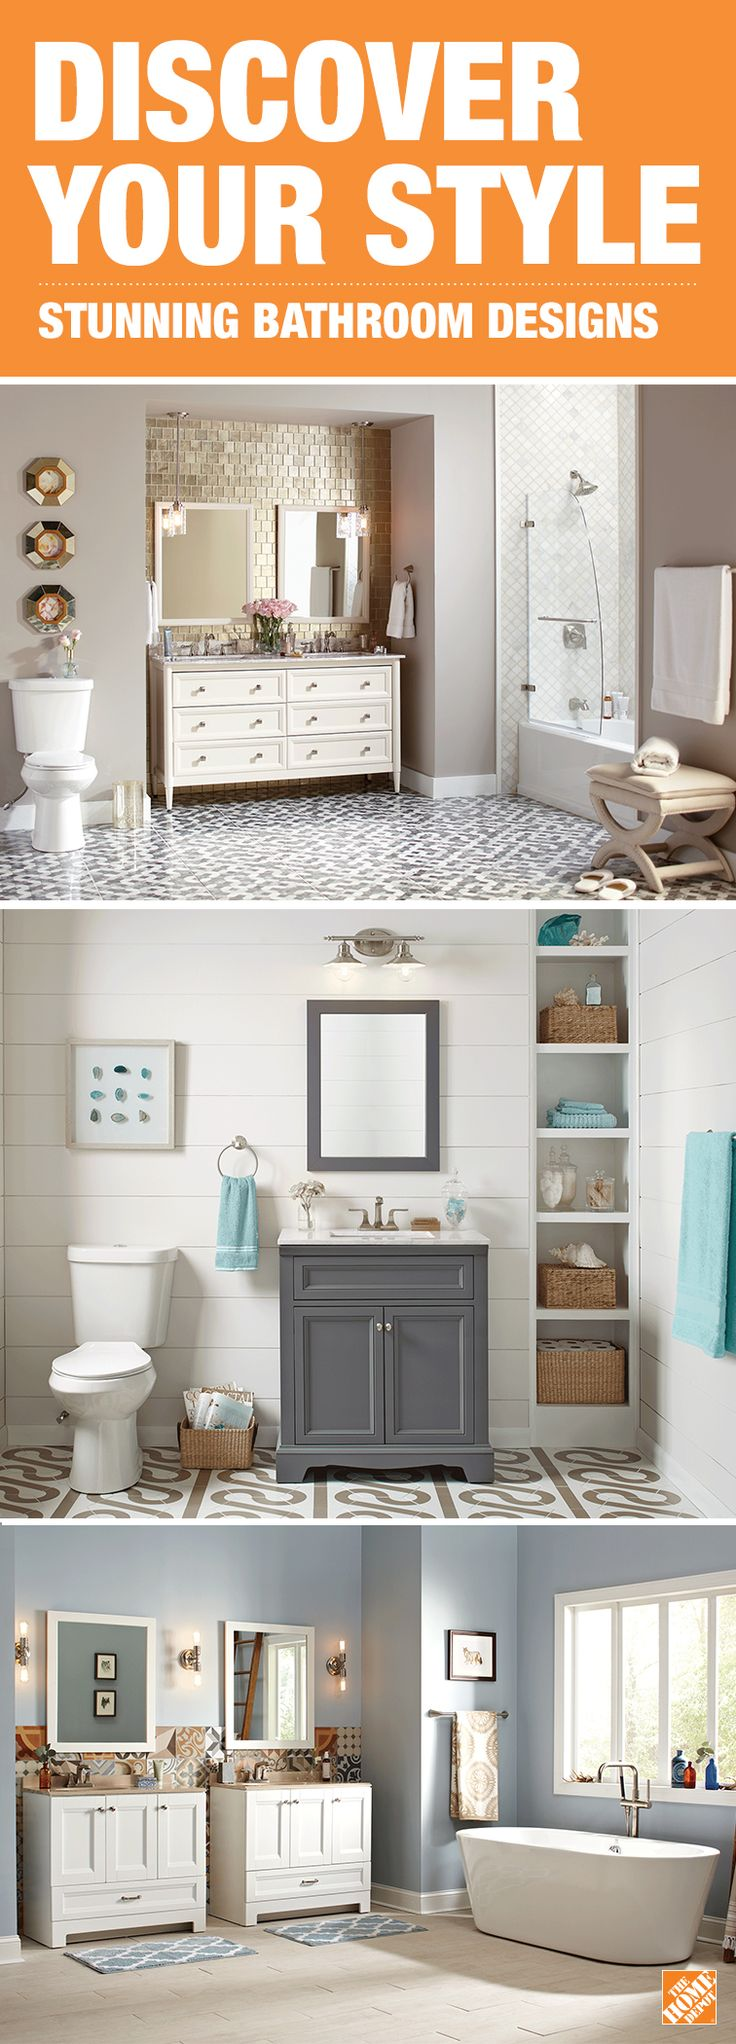 shop our bathrooms department to customize your woodbrook collection today at the home depot - Bathroom Design Ideas Home Depot